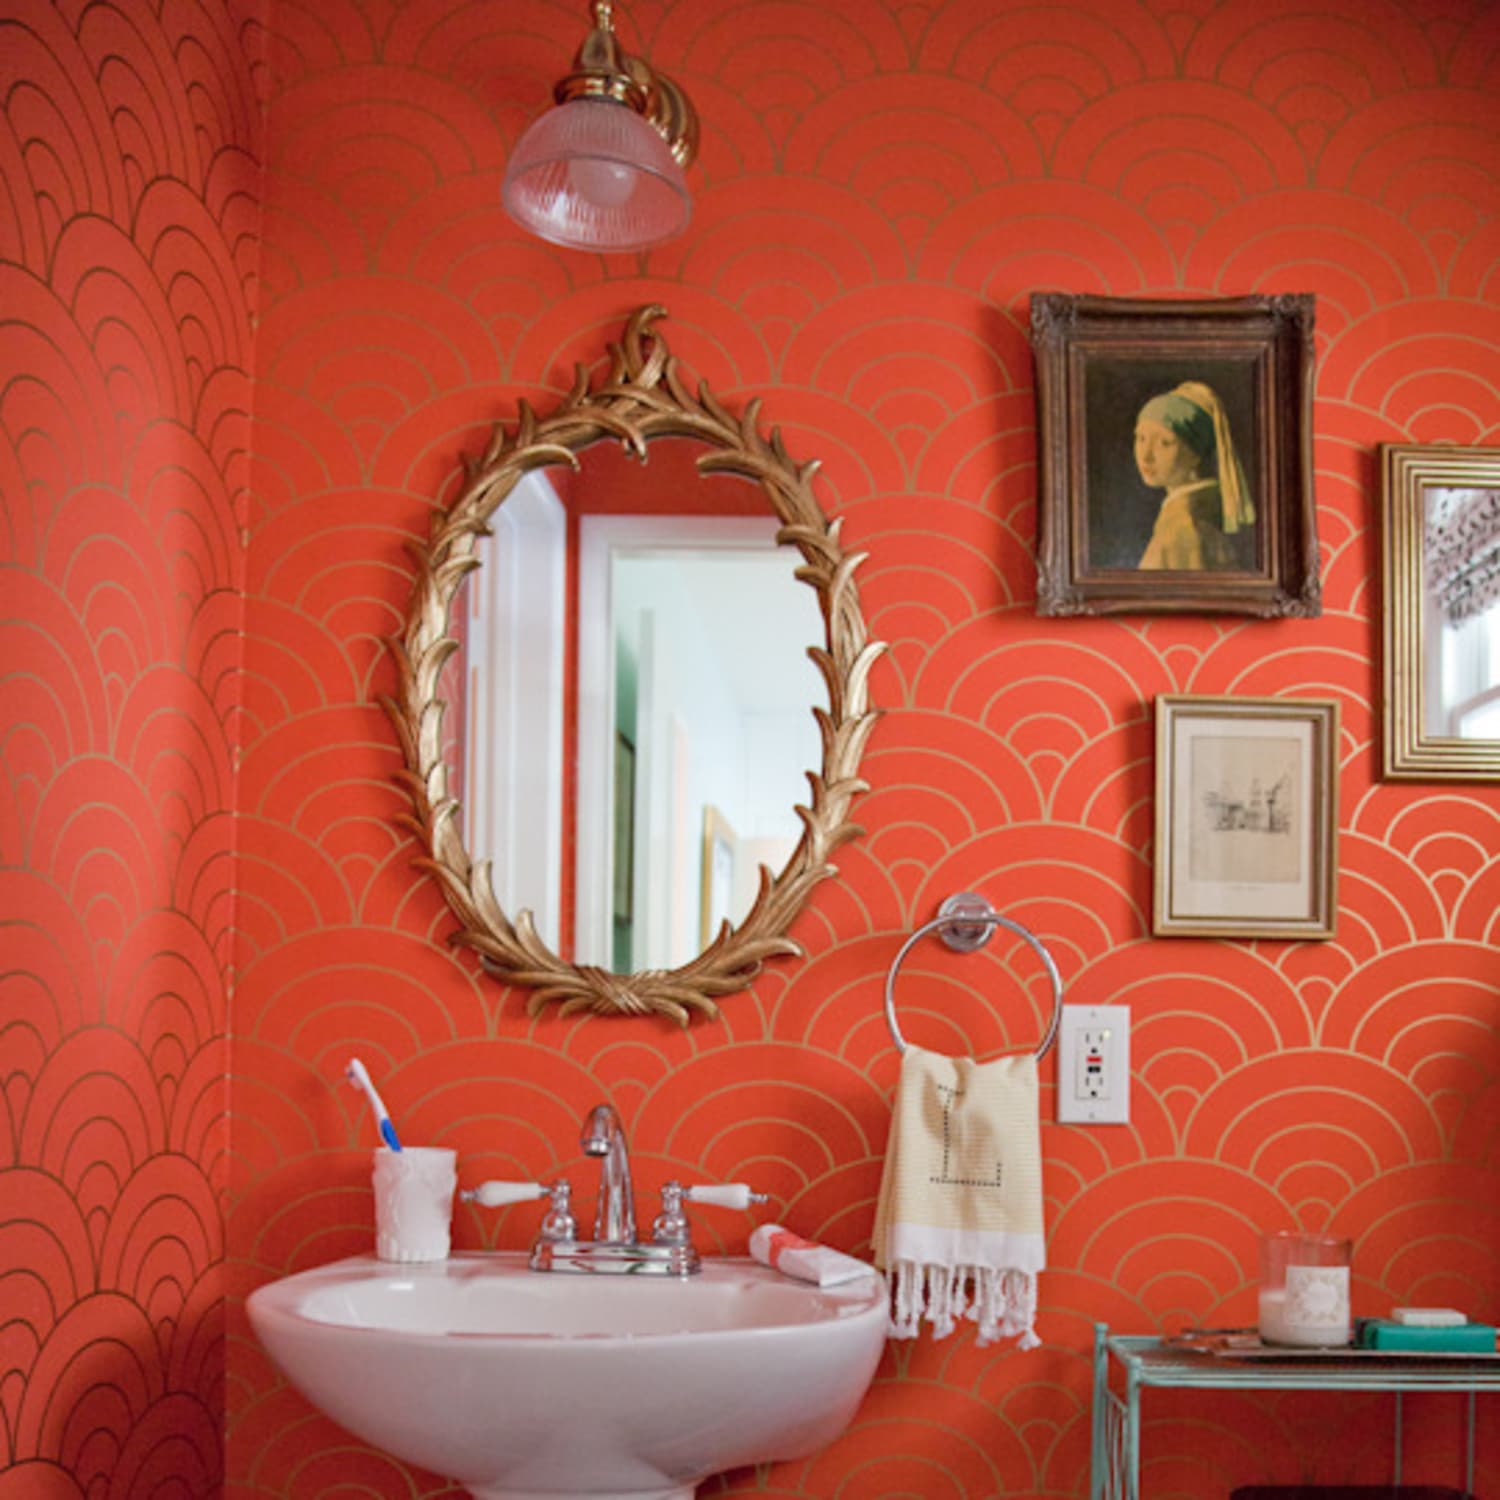 Paint Color Portfolio: Coral Bathrooms | Apartment Therapy on sage bathroom designs, peacock bathroom designs, shell bathroom designs, hunter green bathroom designs, fuschia bathroom designs, mahogany bathroom designs, navy bathroom designs, chocolate bathroom designs, seashell bathroom designs, orange bathroom designs, forest bathroom designs, gold bathroom designs, mauve bathroom designs, mint bathroom designs, purple bathroom designs, coral colored bathrooms, light green bathroom designs, onyx bathroom designs, rock bathroom designs, coral painted bathrooms,